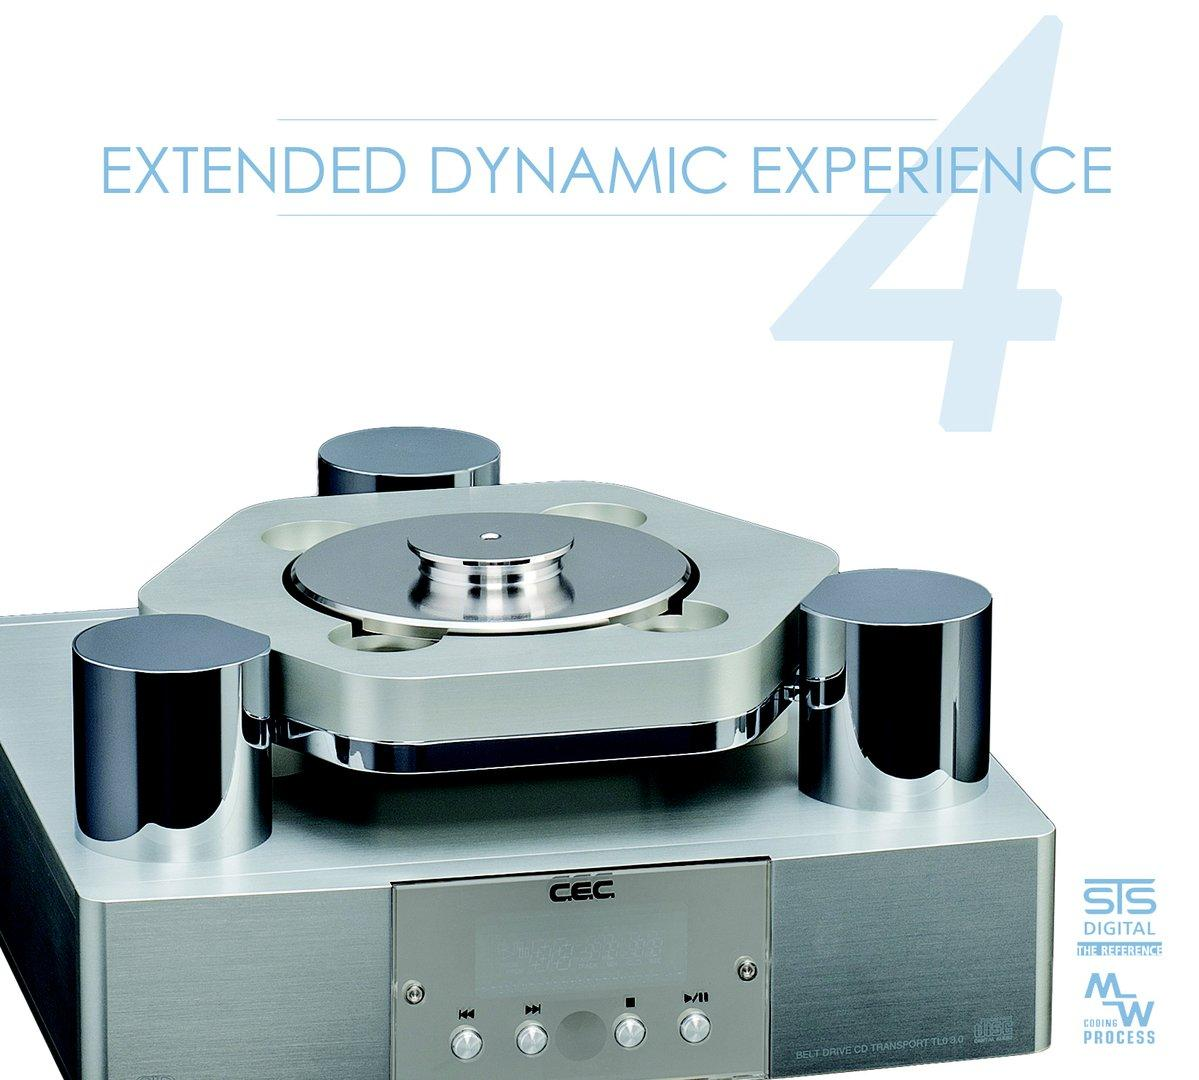 STS Digital - EXTENDED DYNAMIC EXPERIENCE 4